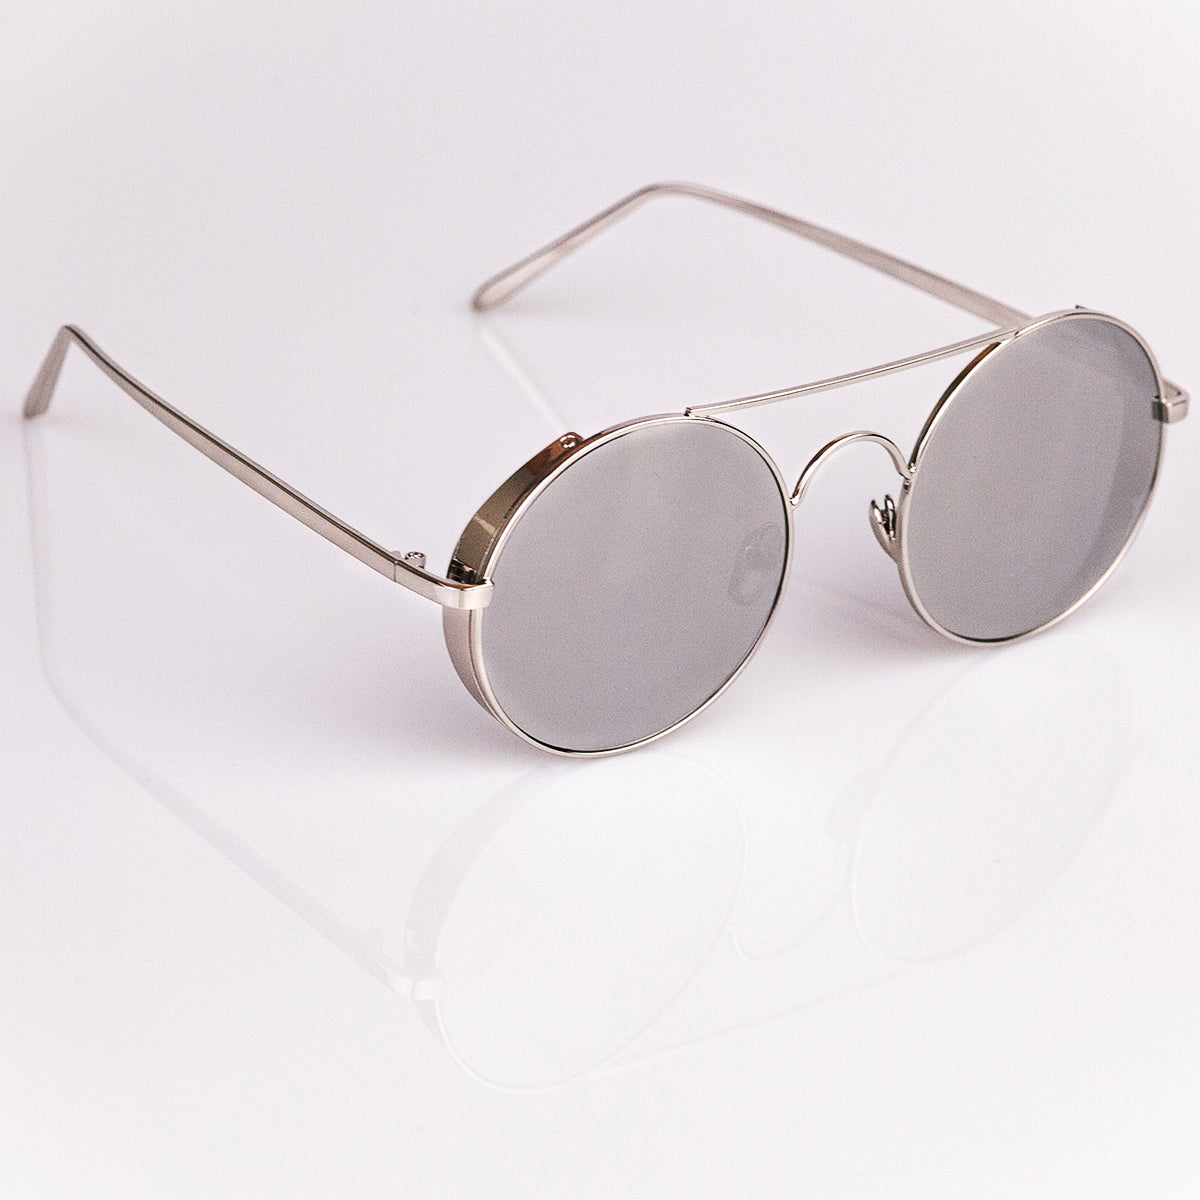 50a9379809363 Steampunk Sunglasses - Silver Frame - Silver Lens - Hipster Sunglasses ...